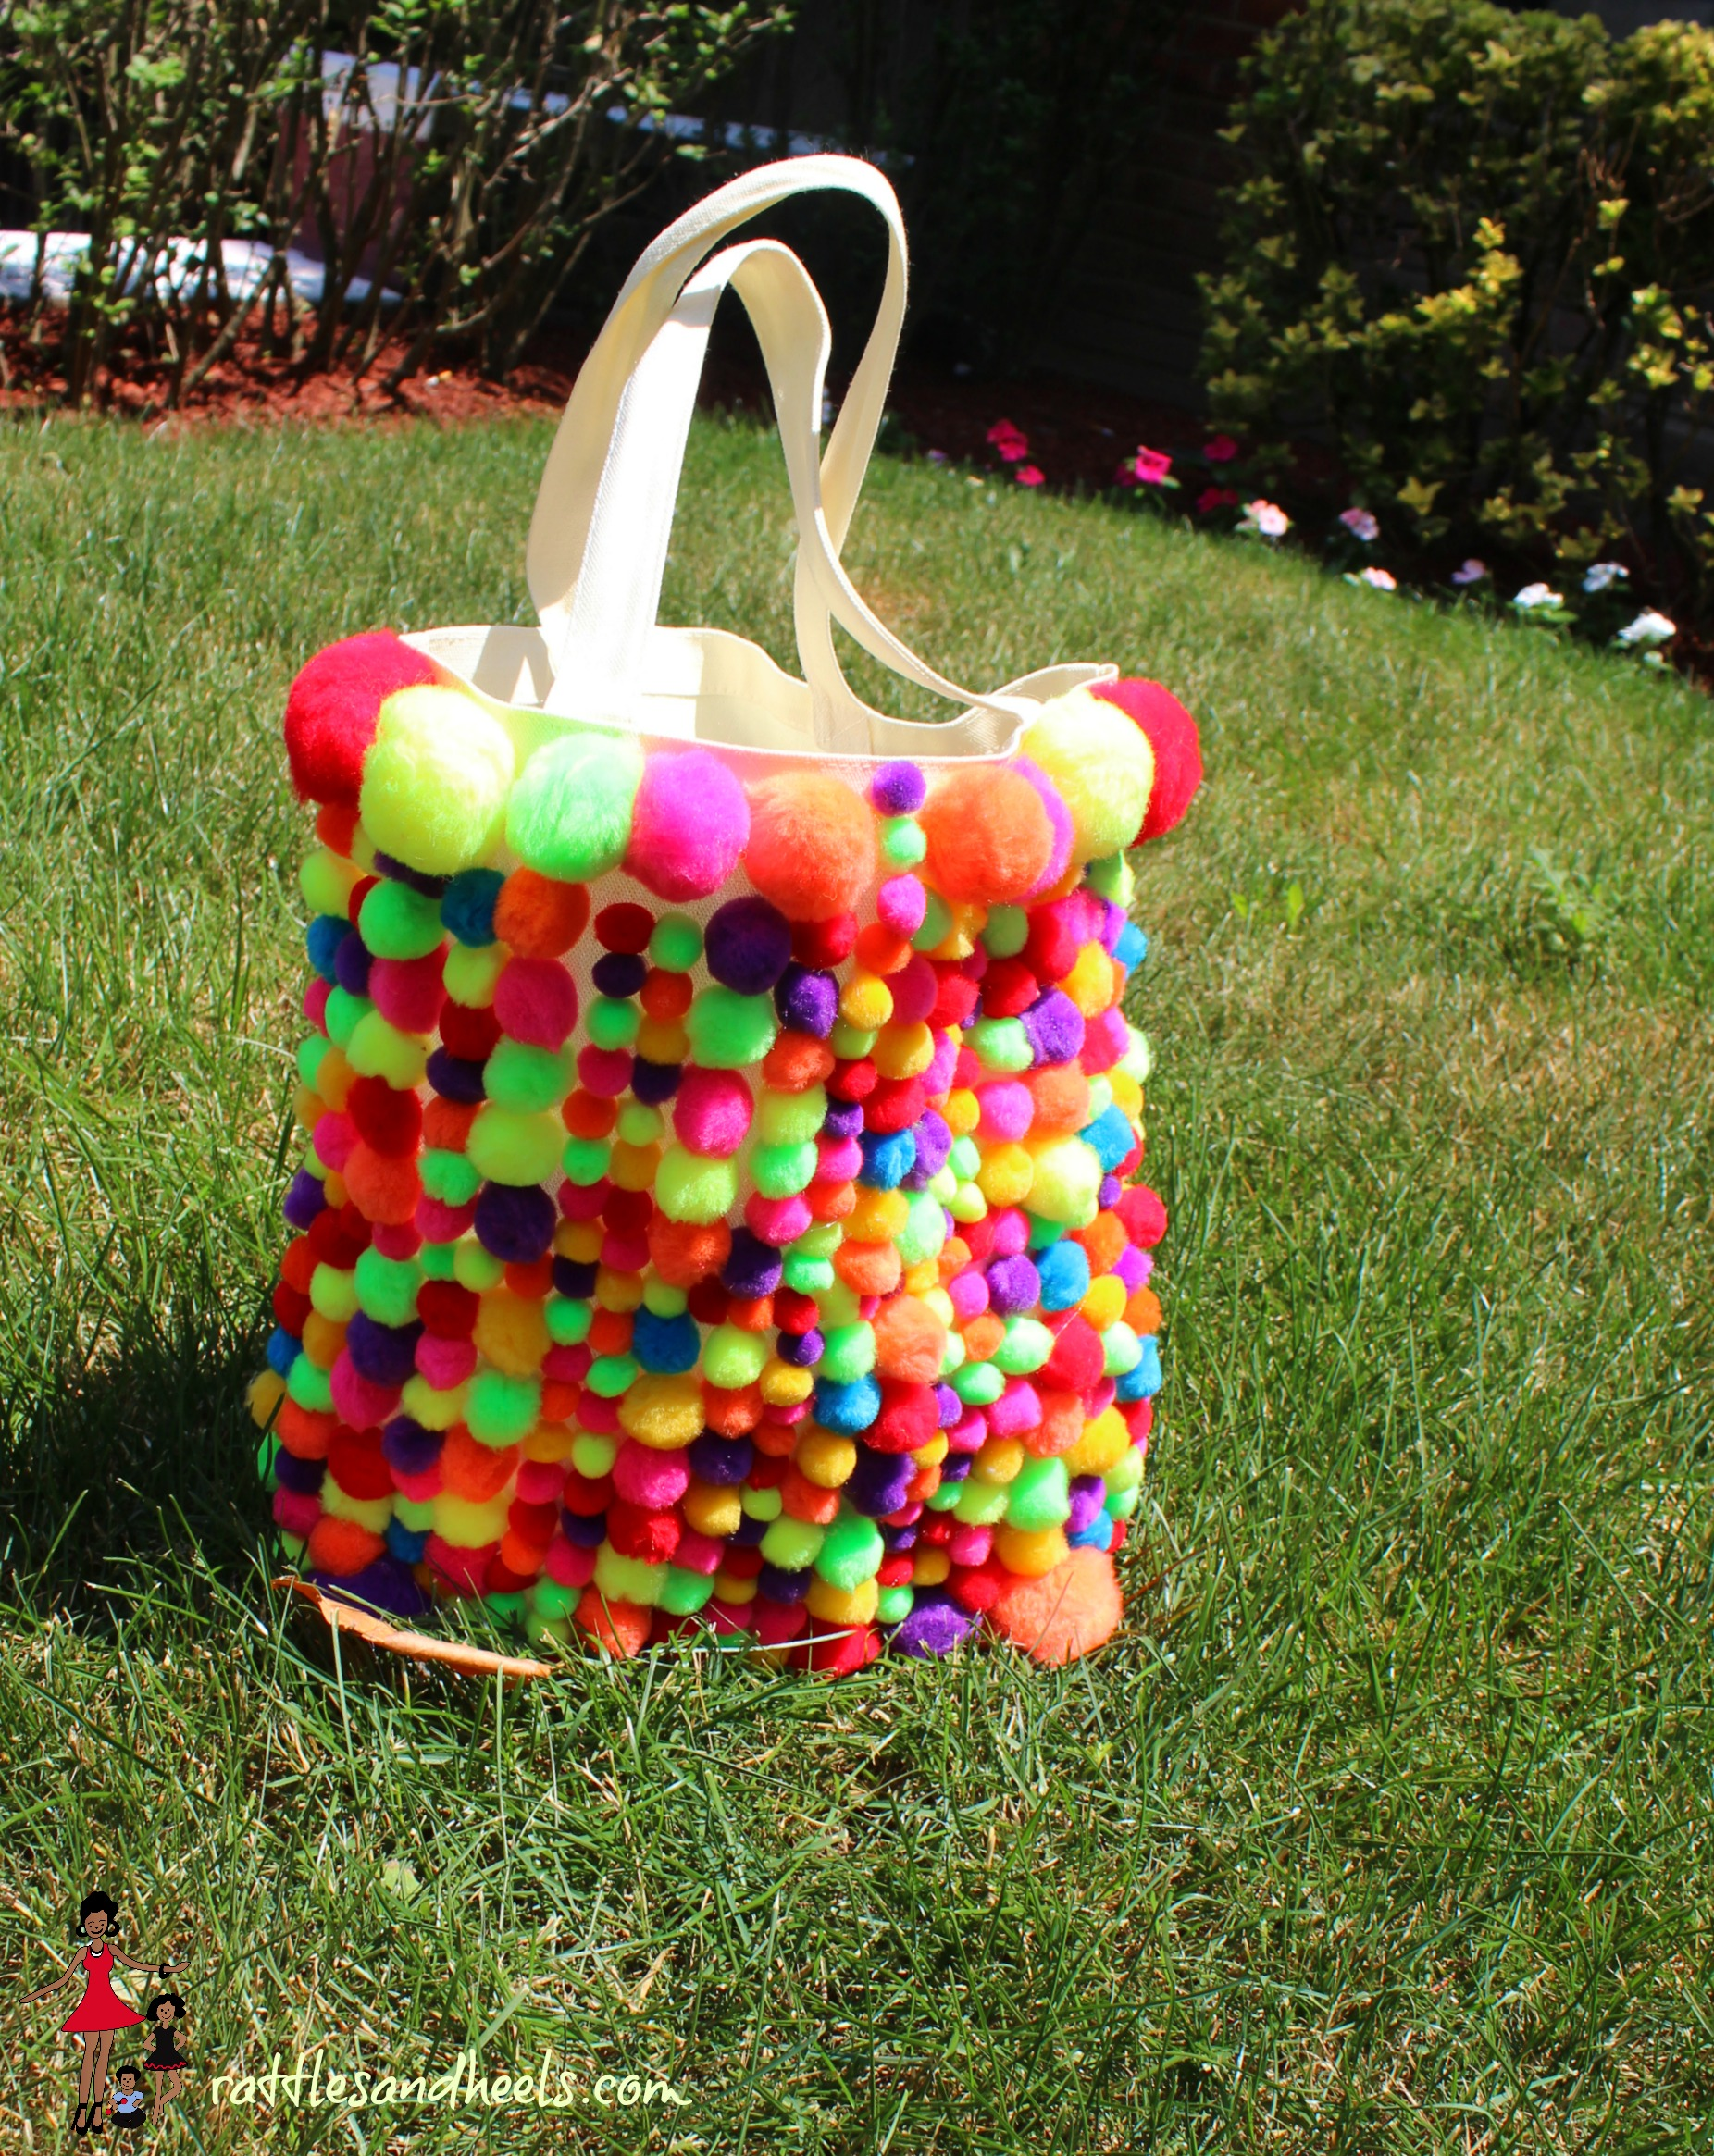 Boho Chic DIY Pom Pom Bag